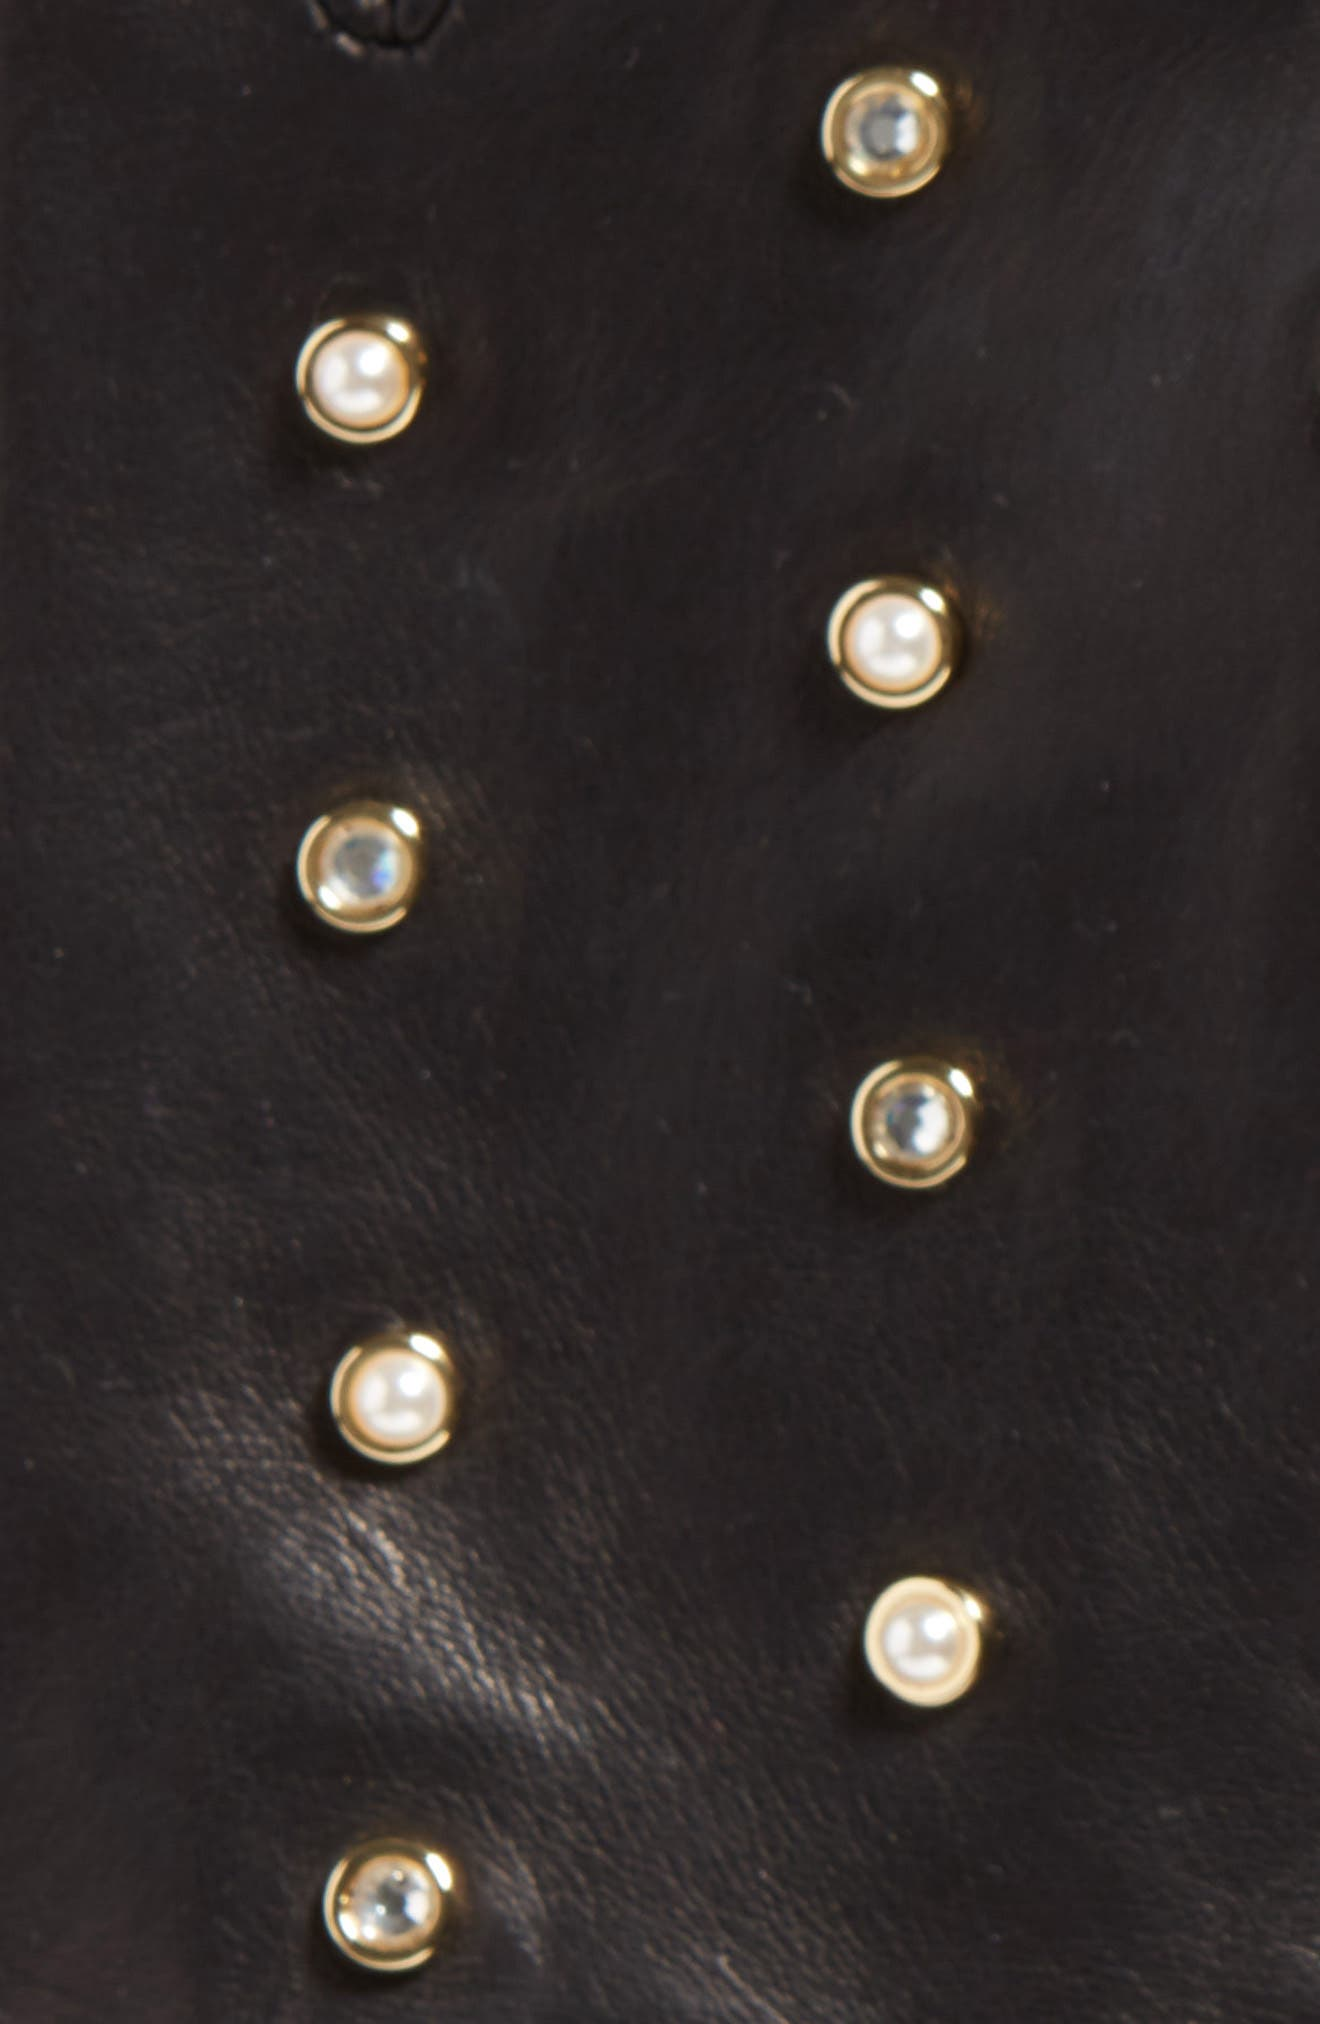 Imitation Pearl & Crystal Scattered Leather Gloves,                             Alternate thumbnail 2, color,                             001